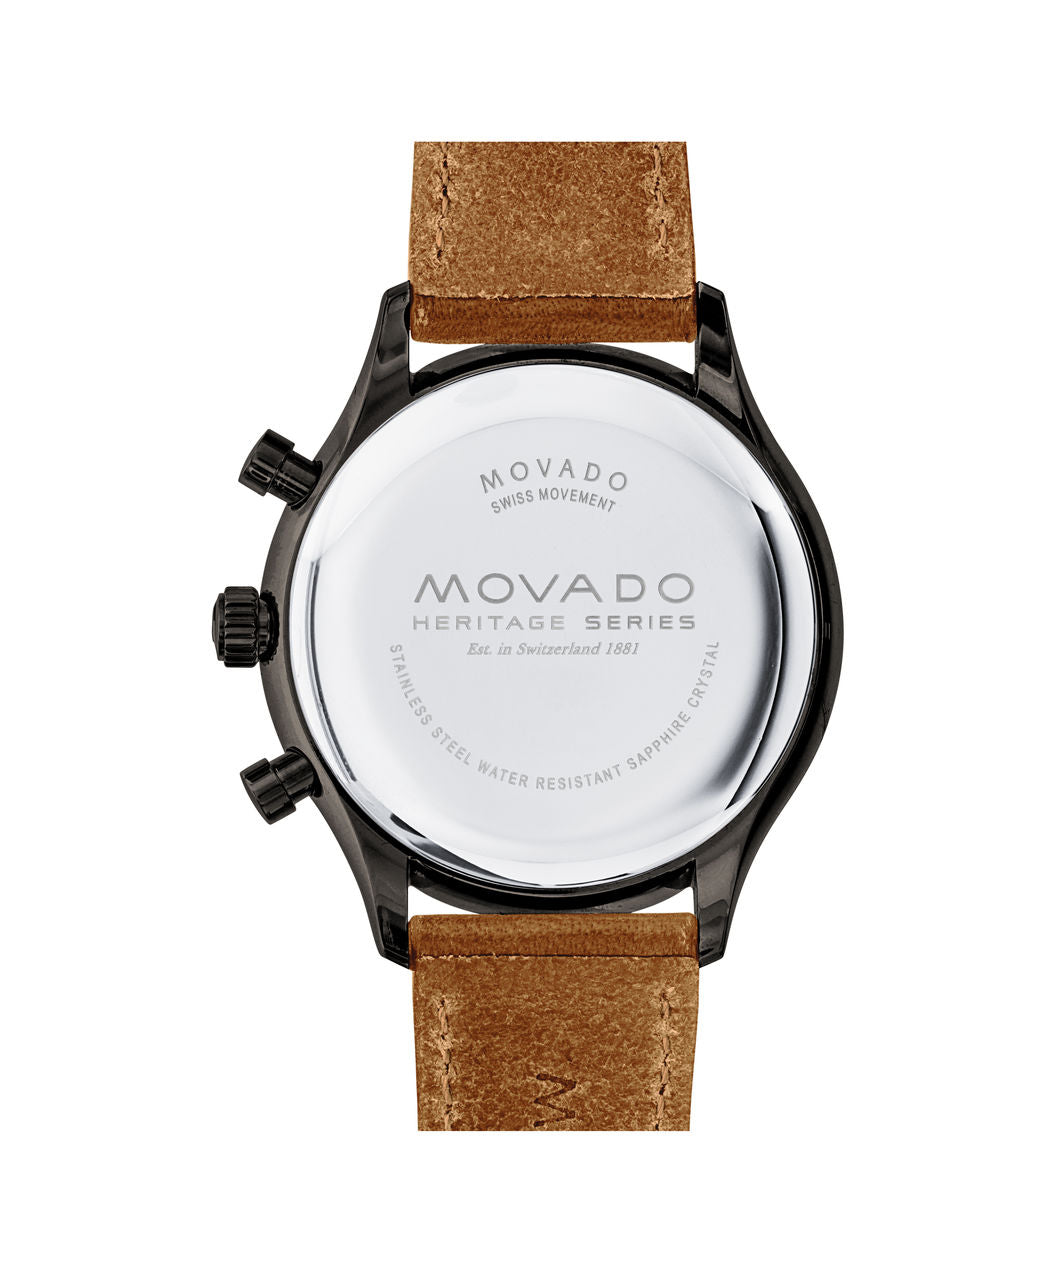 Movado Heritage Series Cognac Leather Strap Black and White Face 3650022